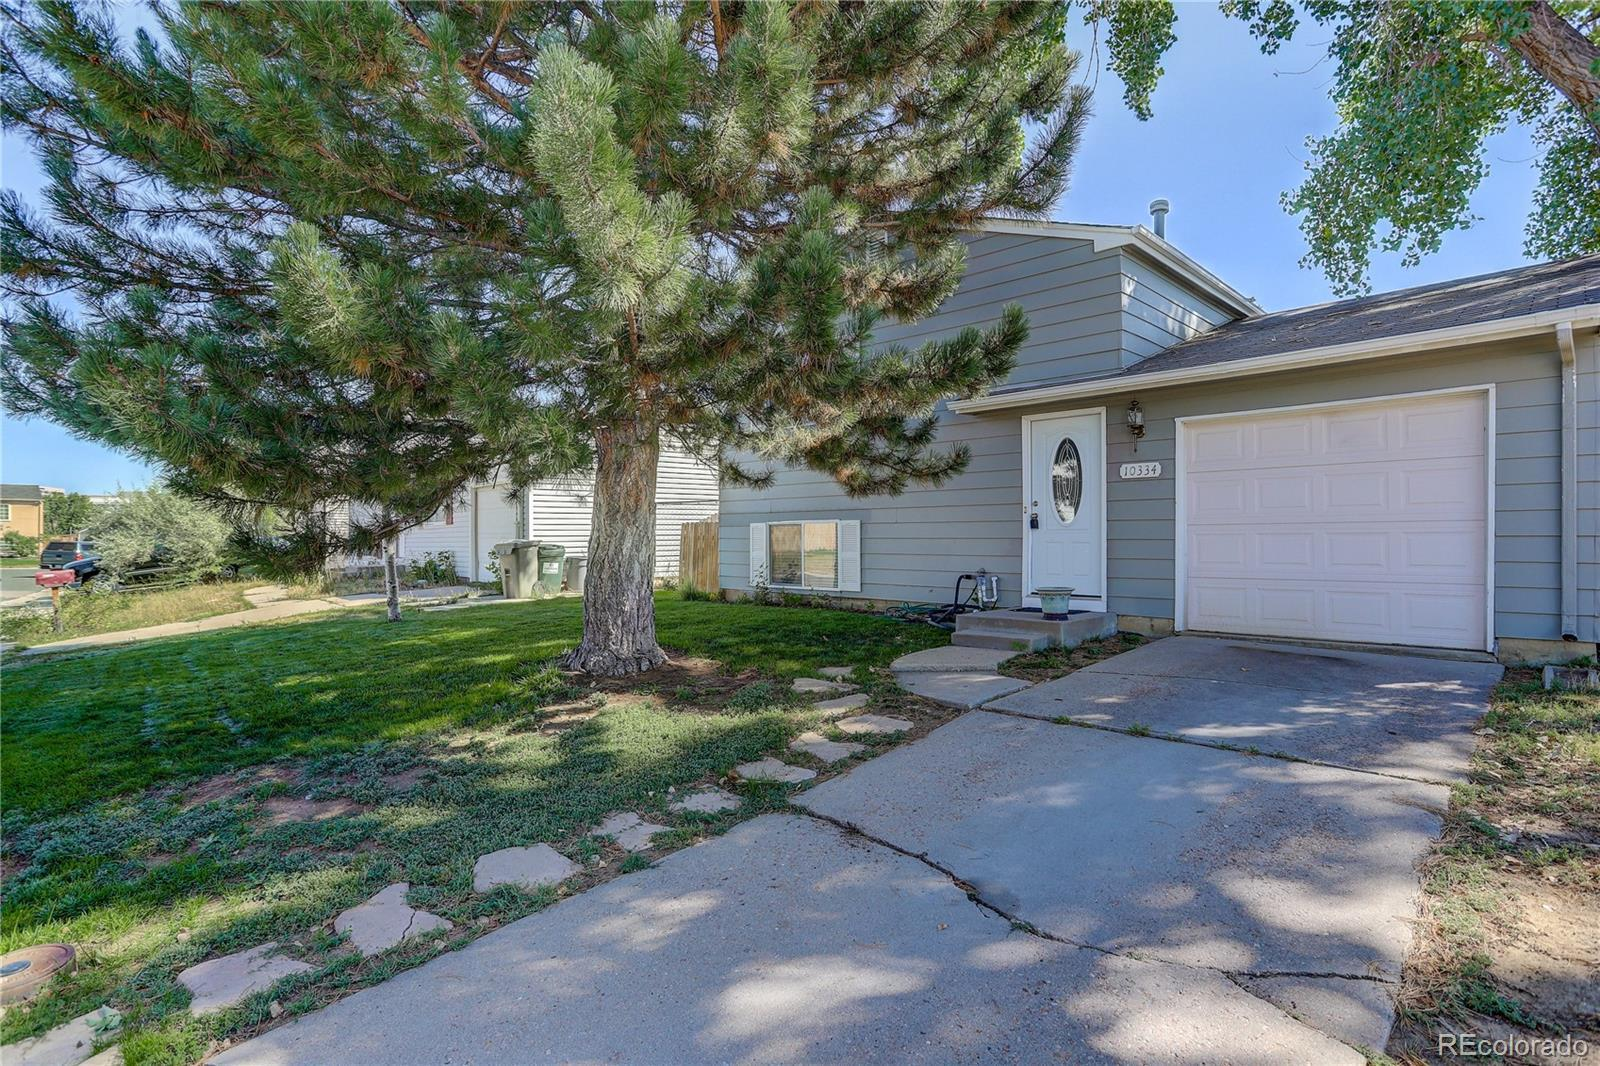 10334 W 107th Circle, Westminster, CO 80021 - #: 9291496